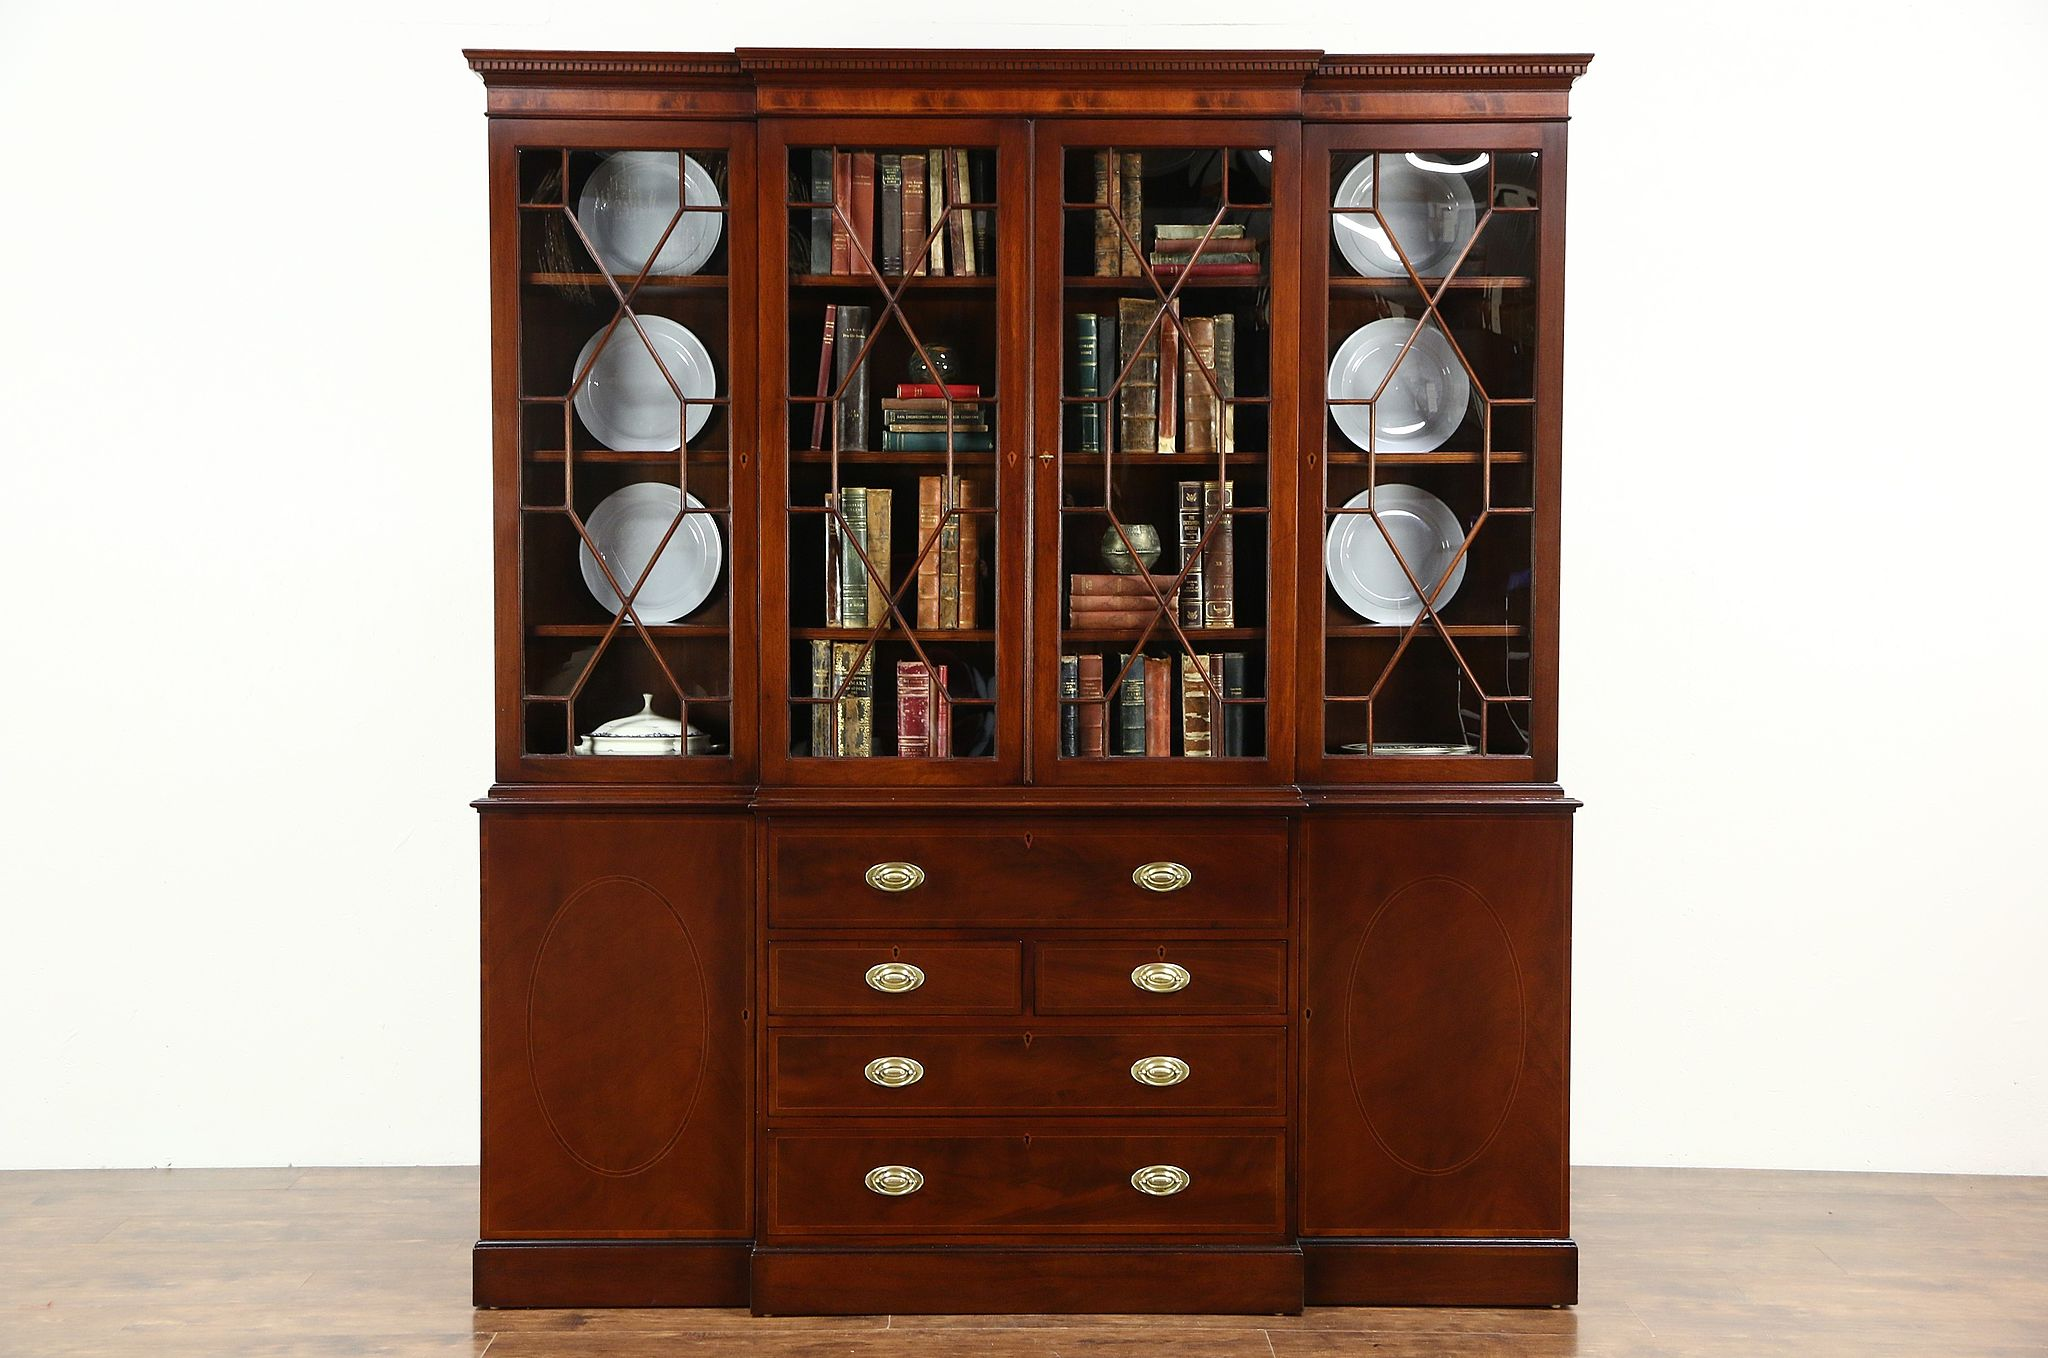 Sold English Vintage Mahogany Breakfront China Cabinet